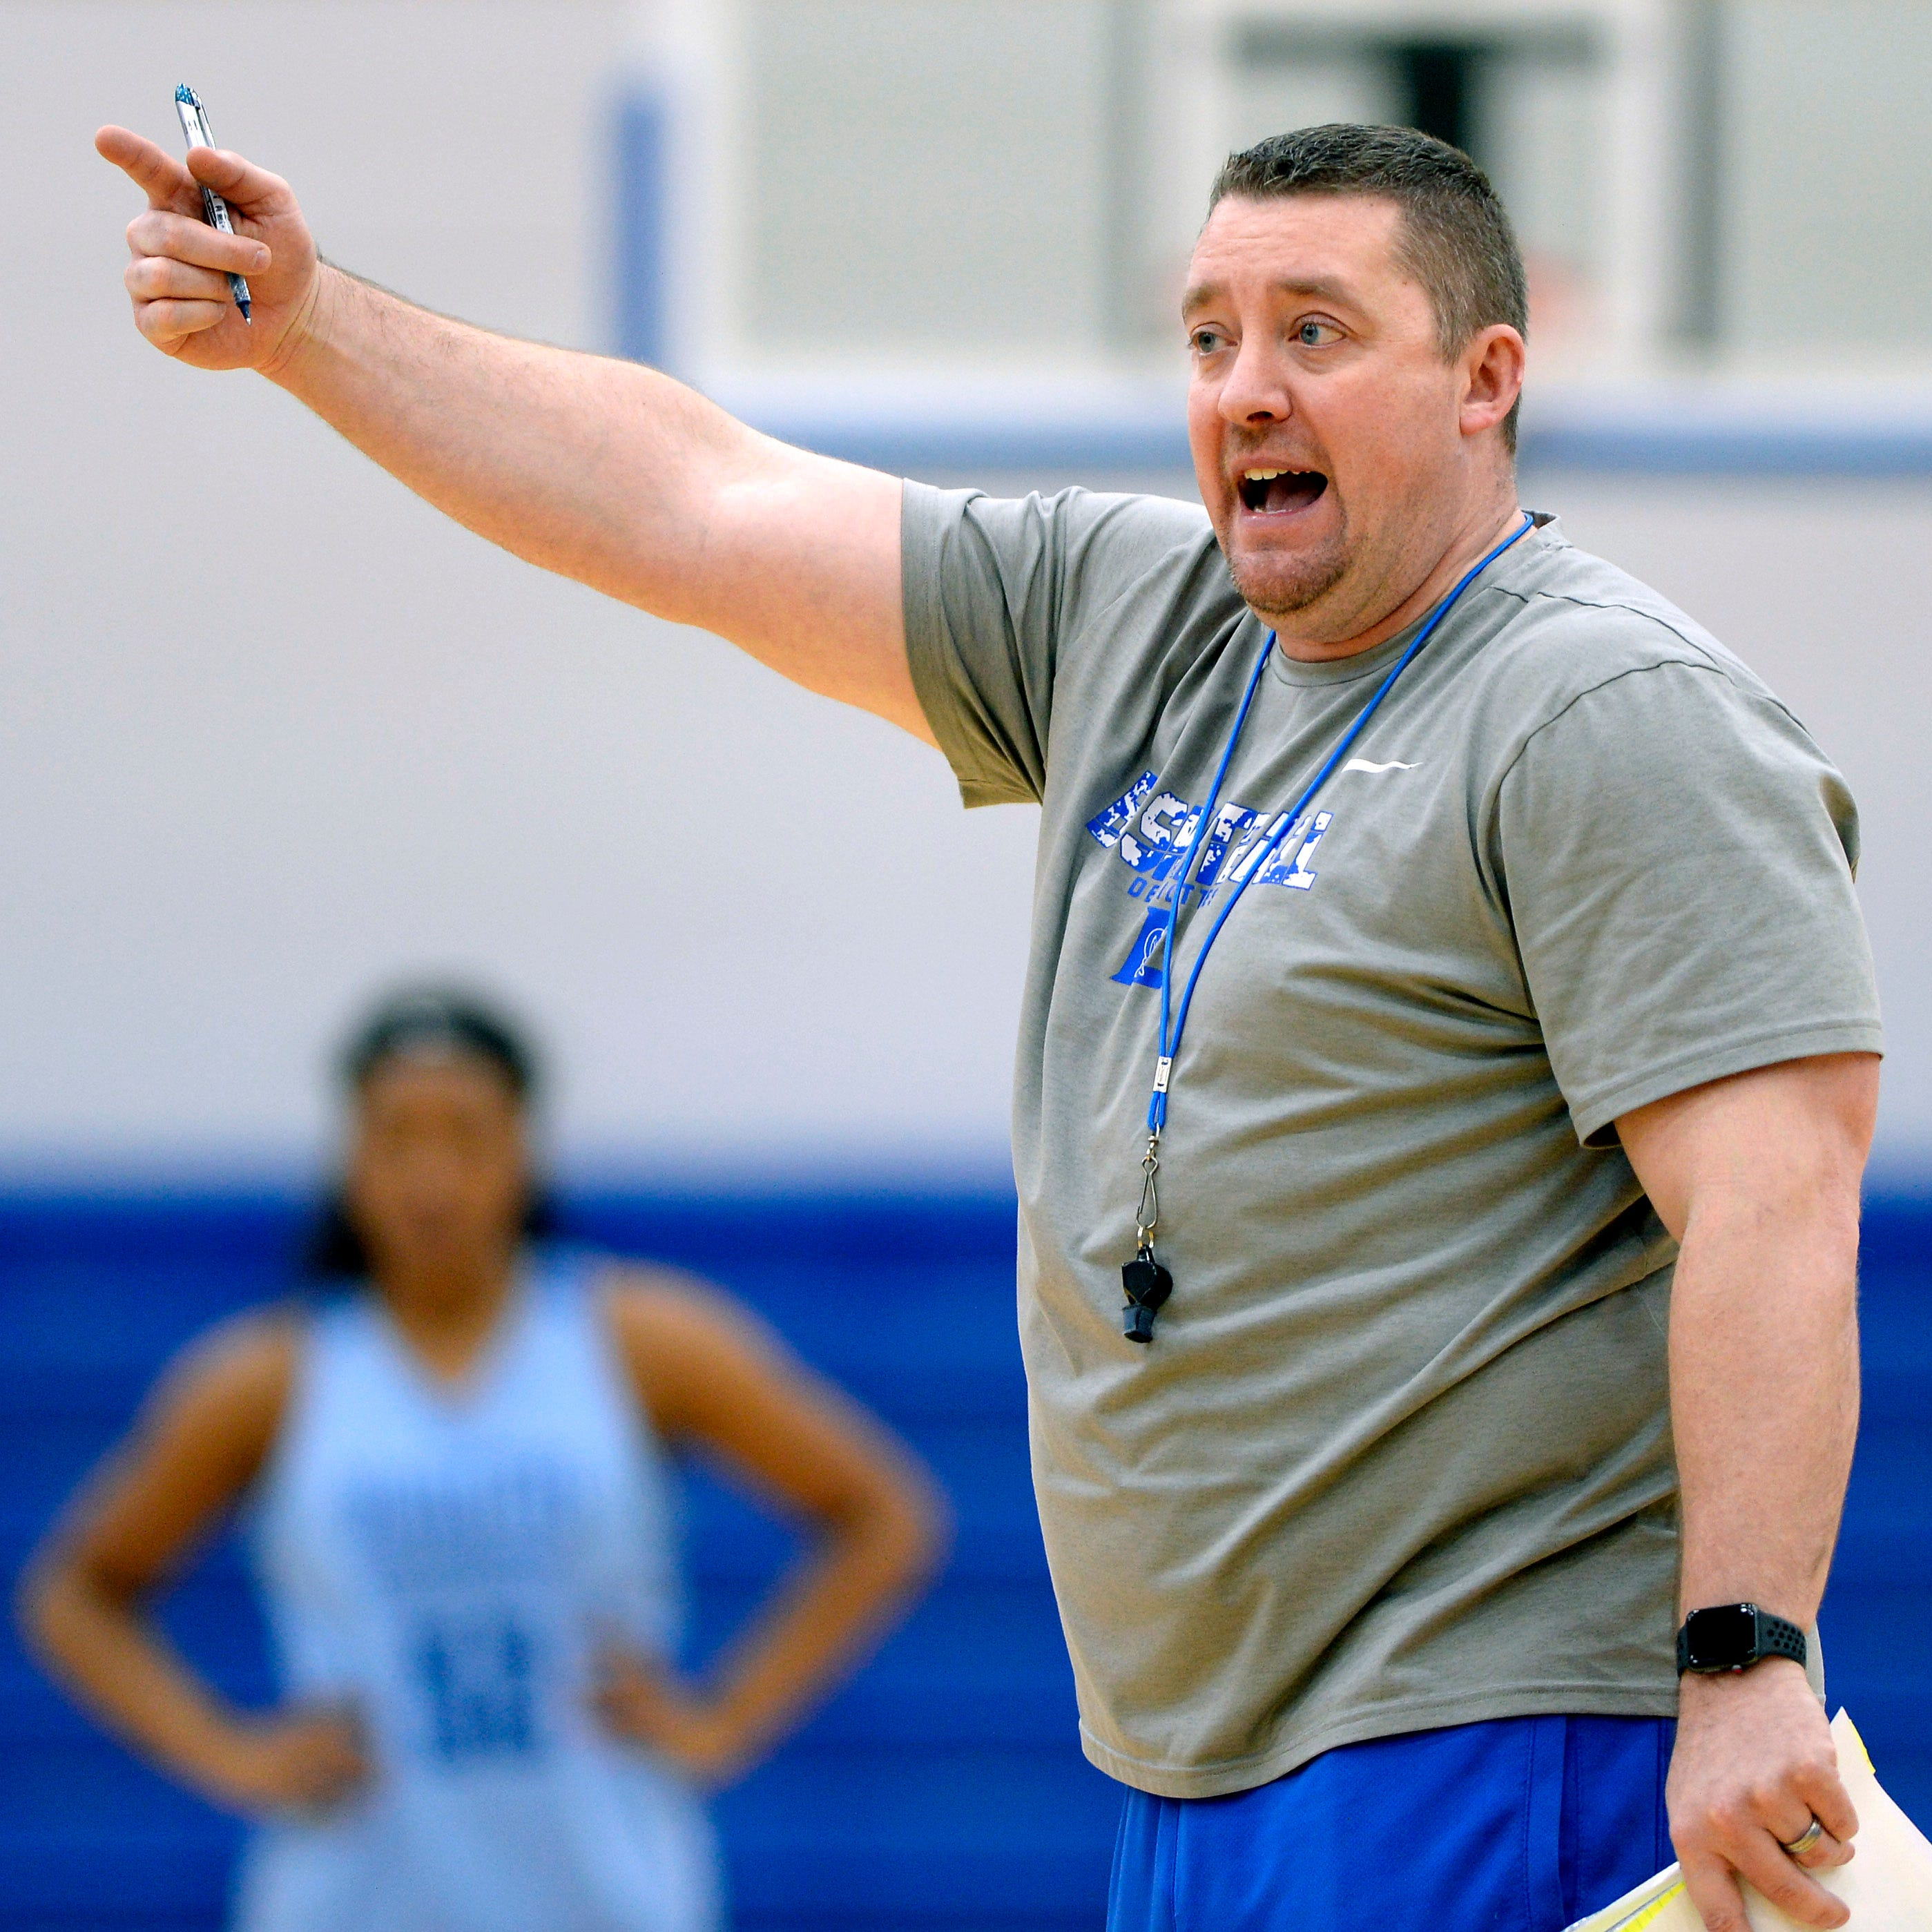 Four years after suspension over tanked game, national champion coach Cory Barrett back at state